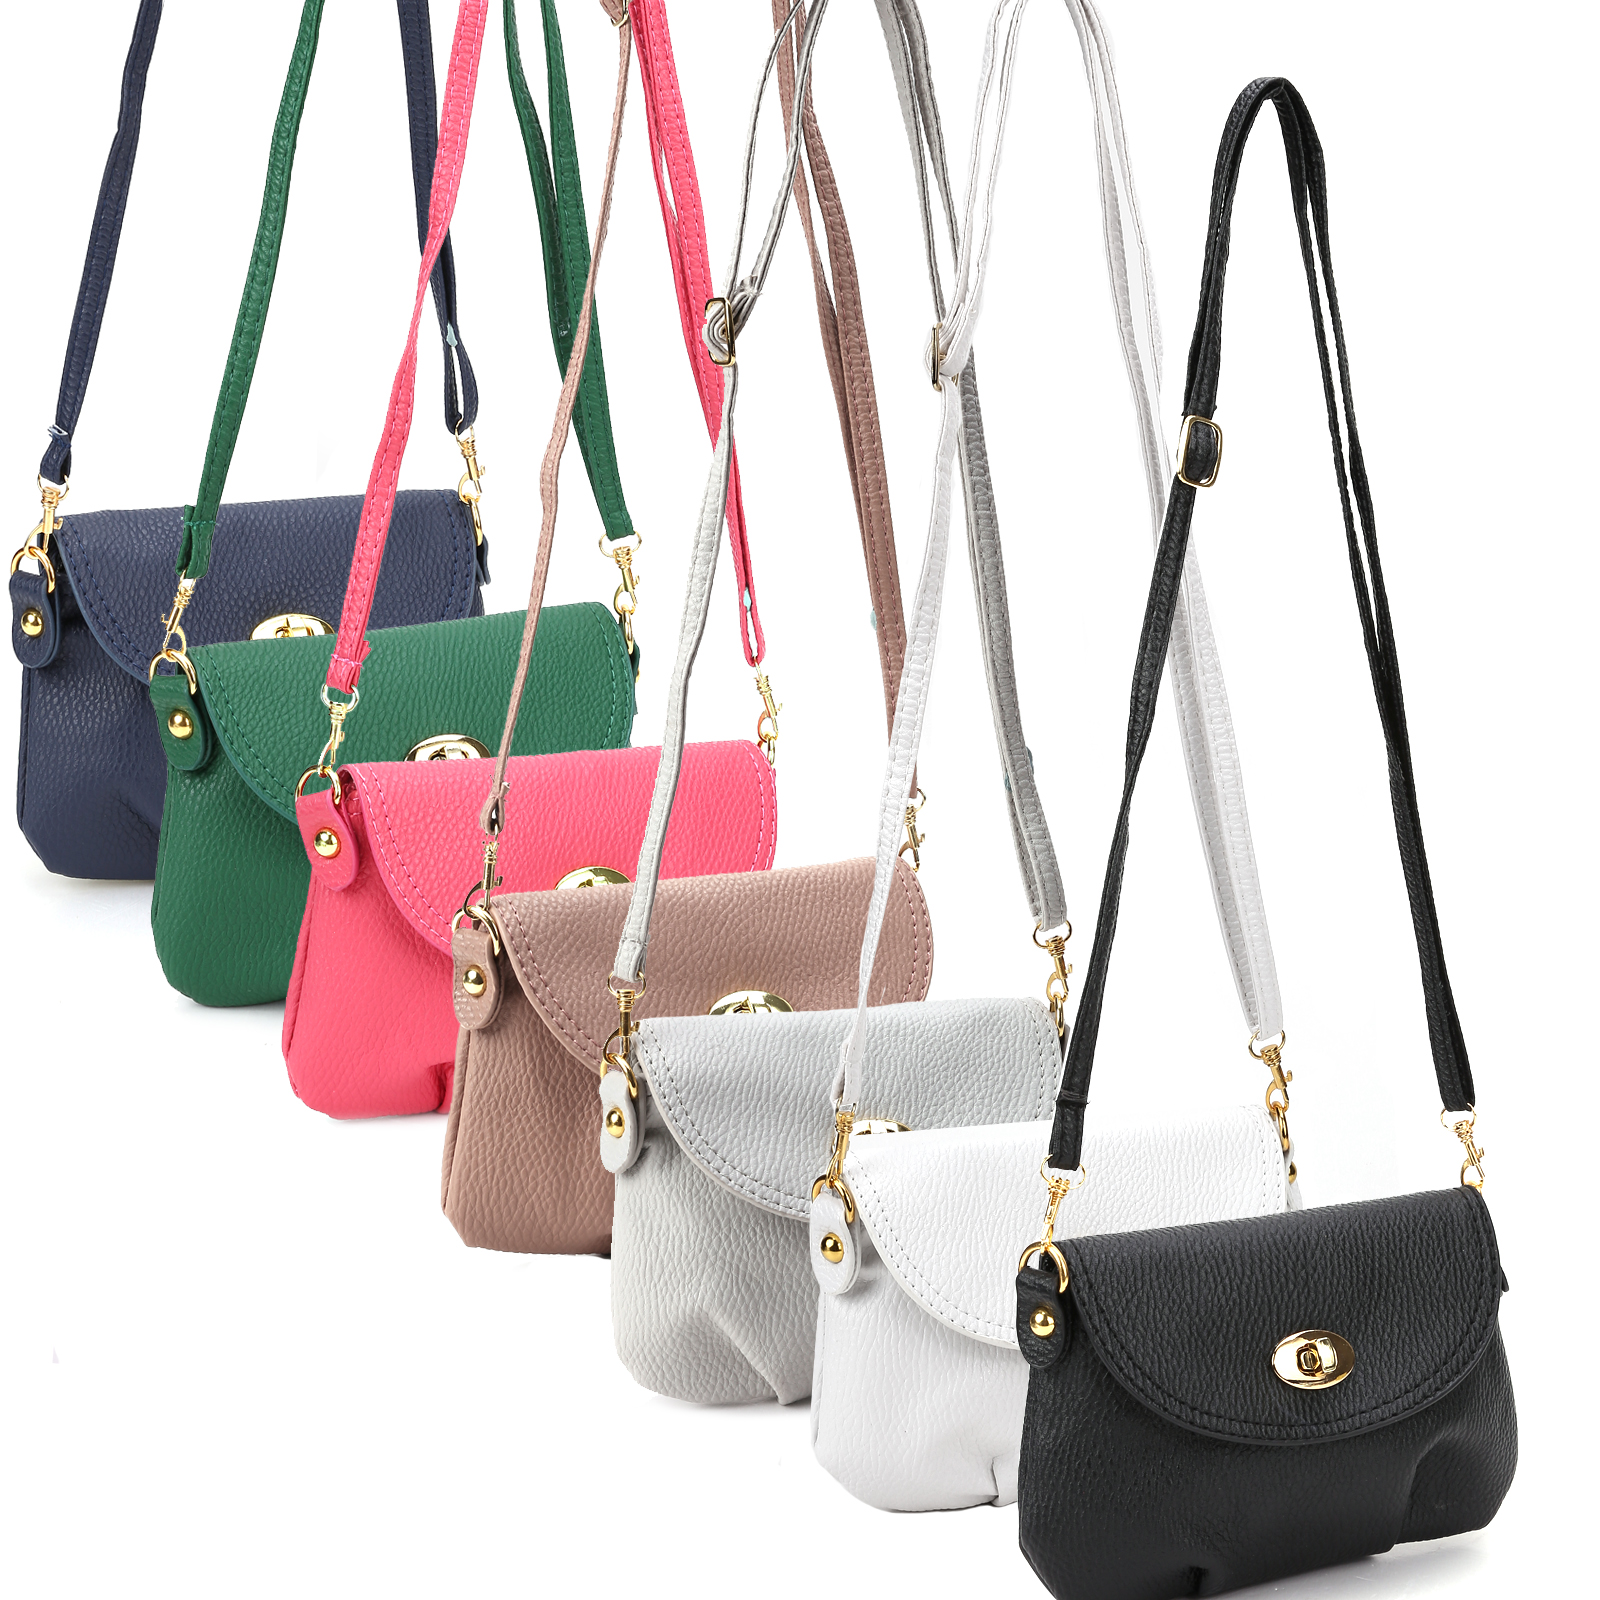 be992a9e8d45 Ladies Small Satchel Leather Handbag Crossbody Shoulder Messenger Totes Bags